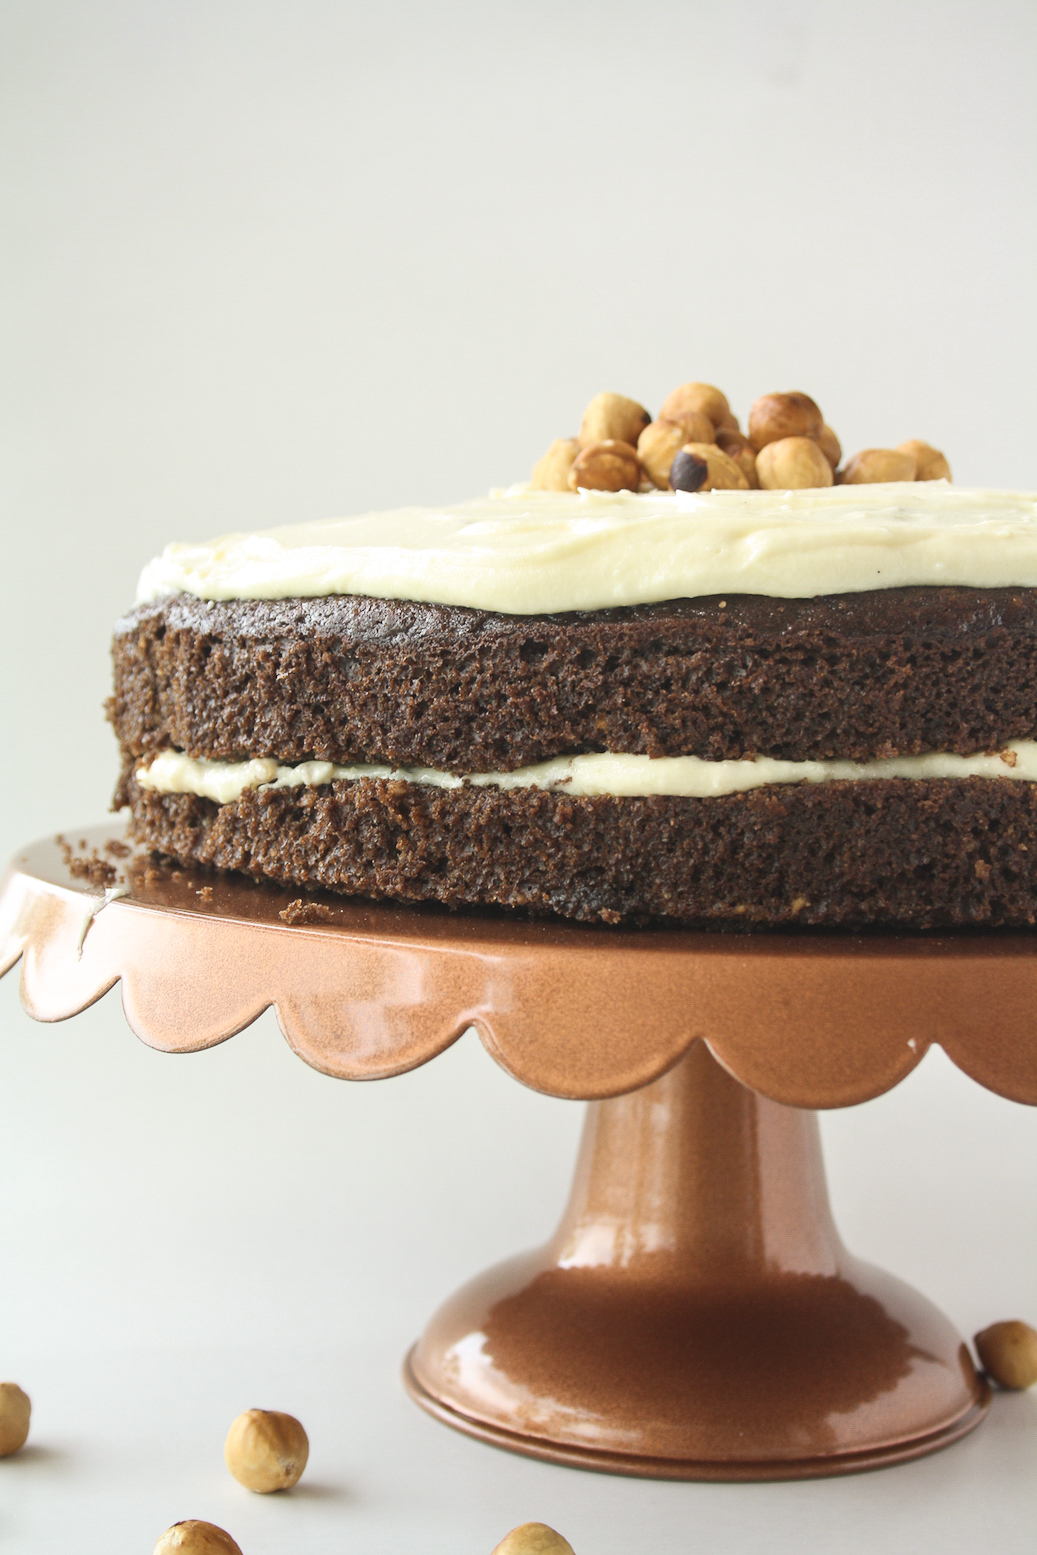 Moist chocolate cake filled with hazelnuts, layered with a hazelnut cream cheese frosting!